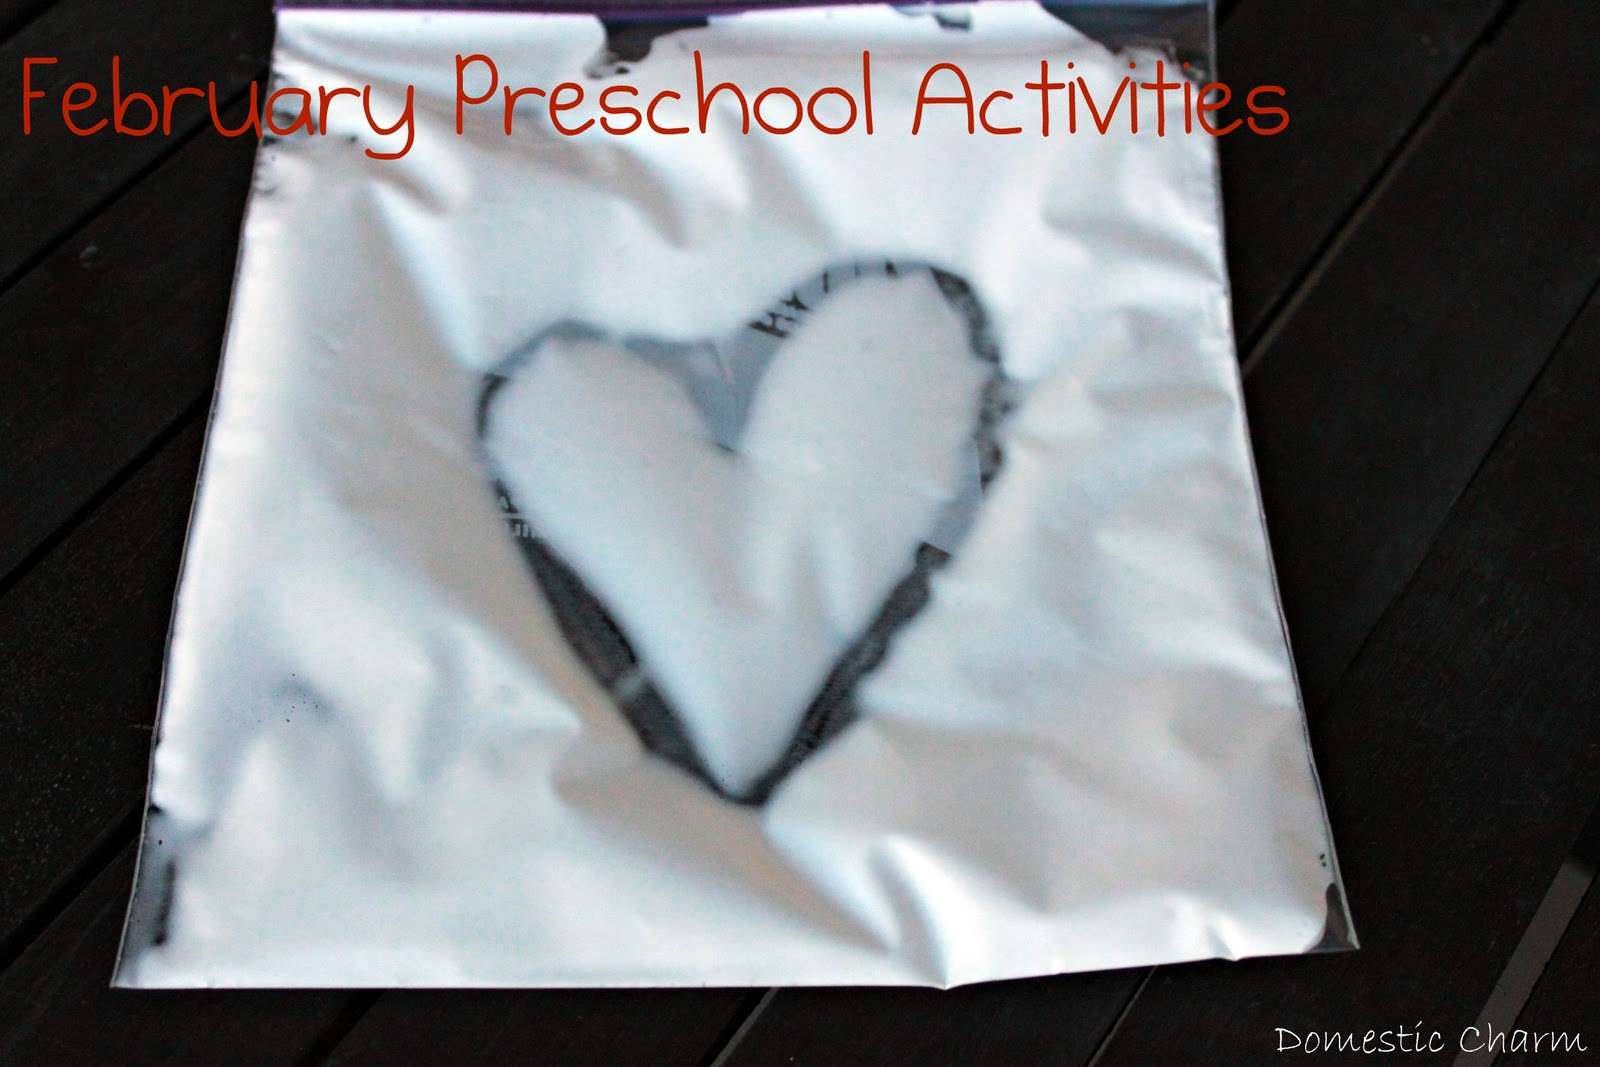 Domestic charm february preschool activities for Preschool crafts for february